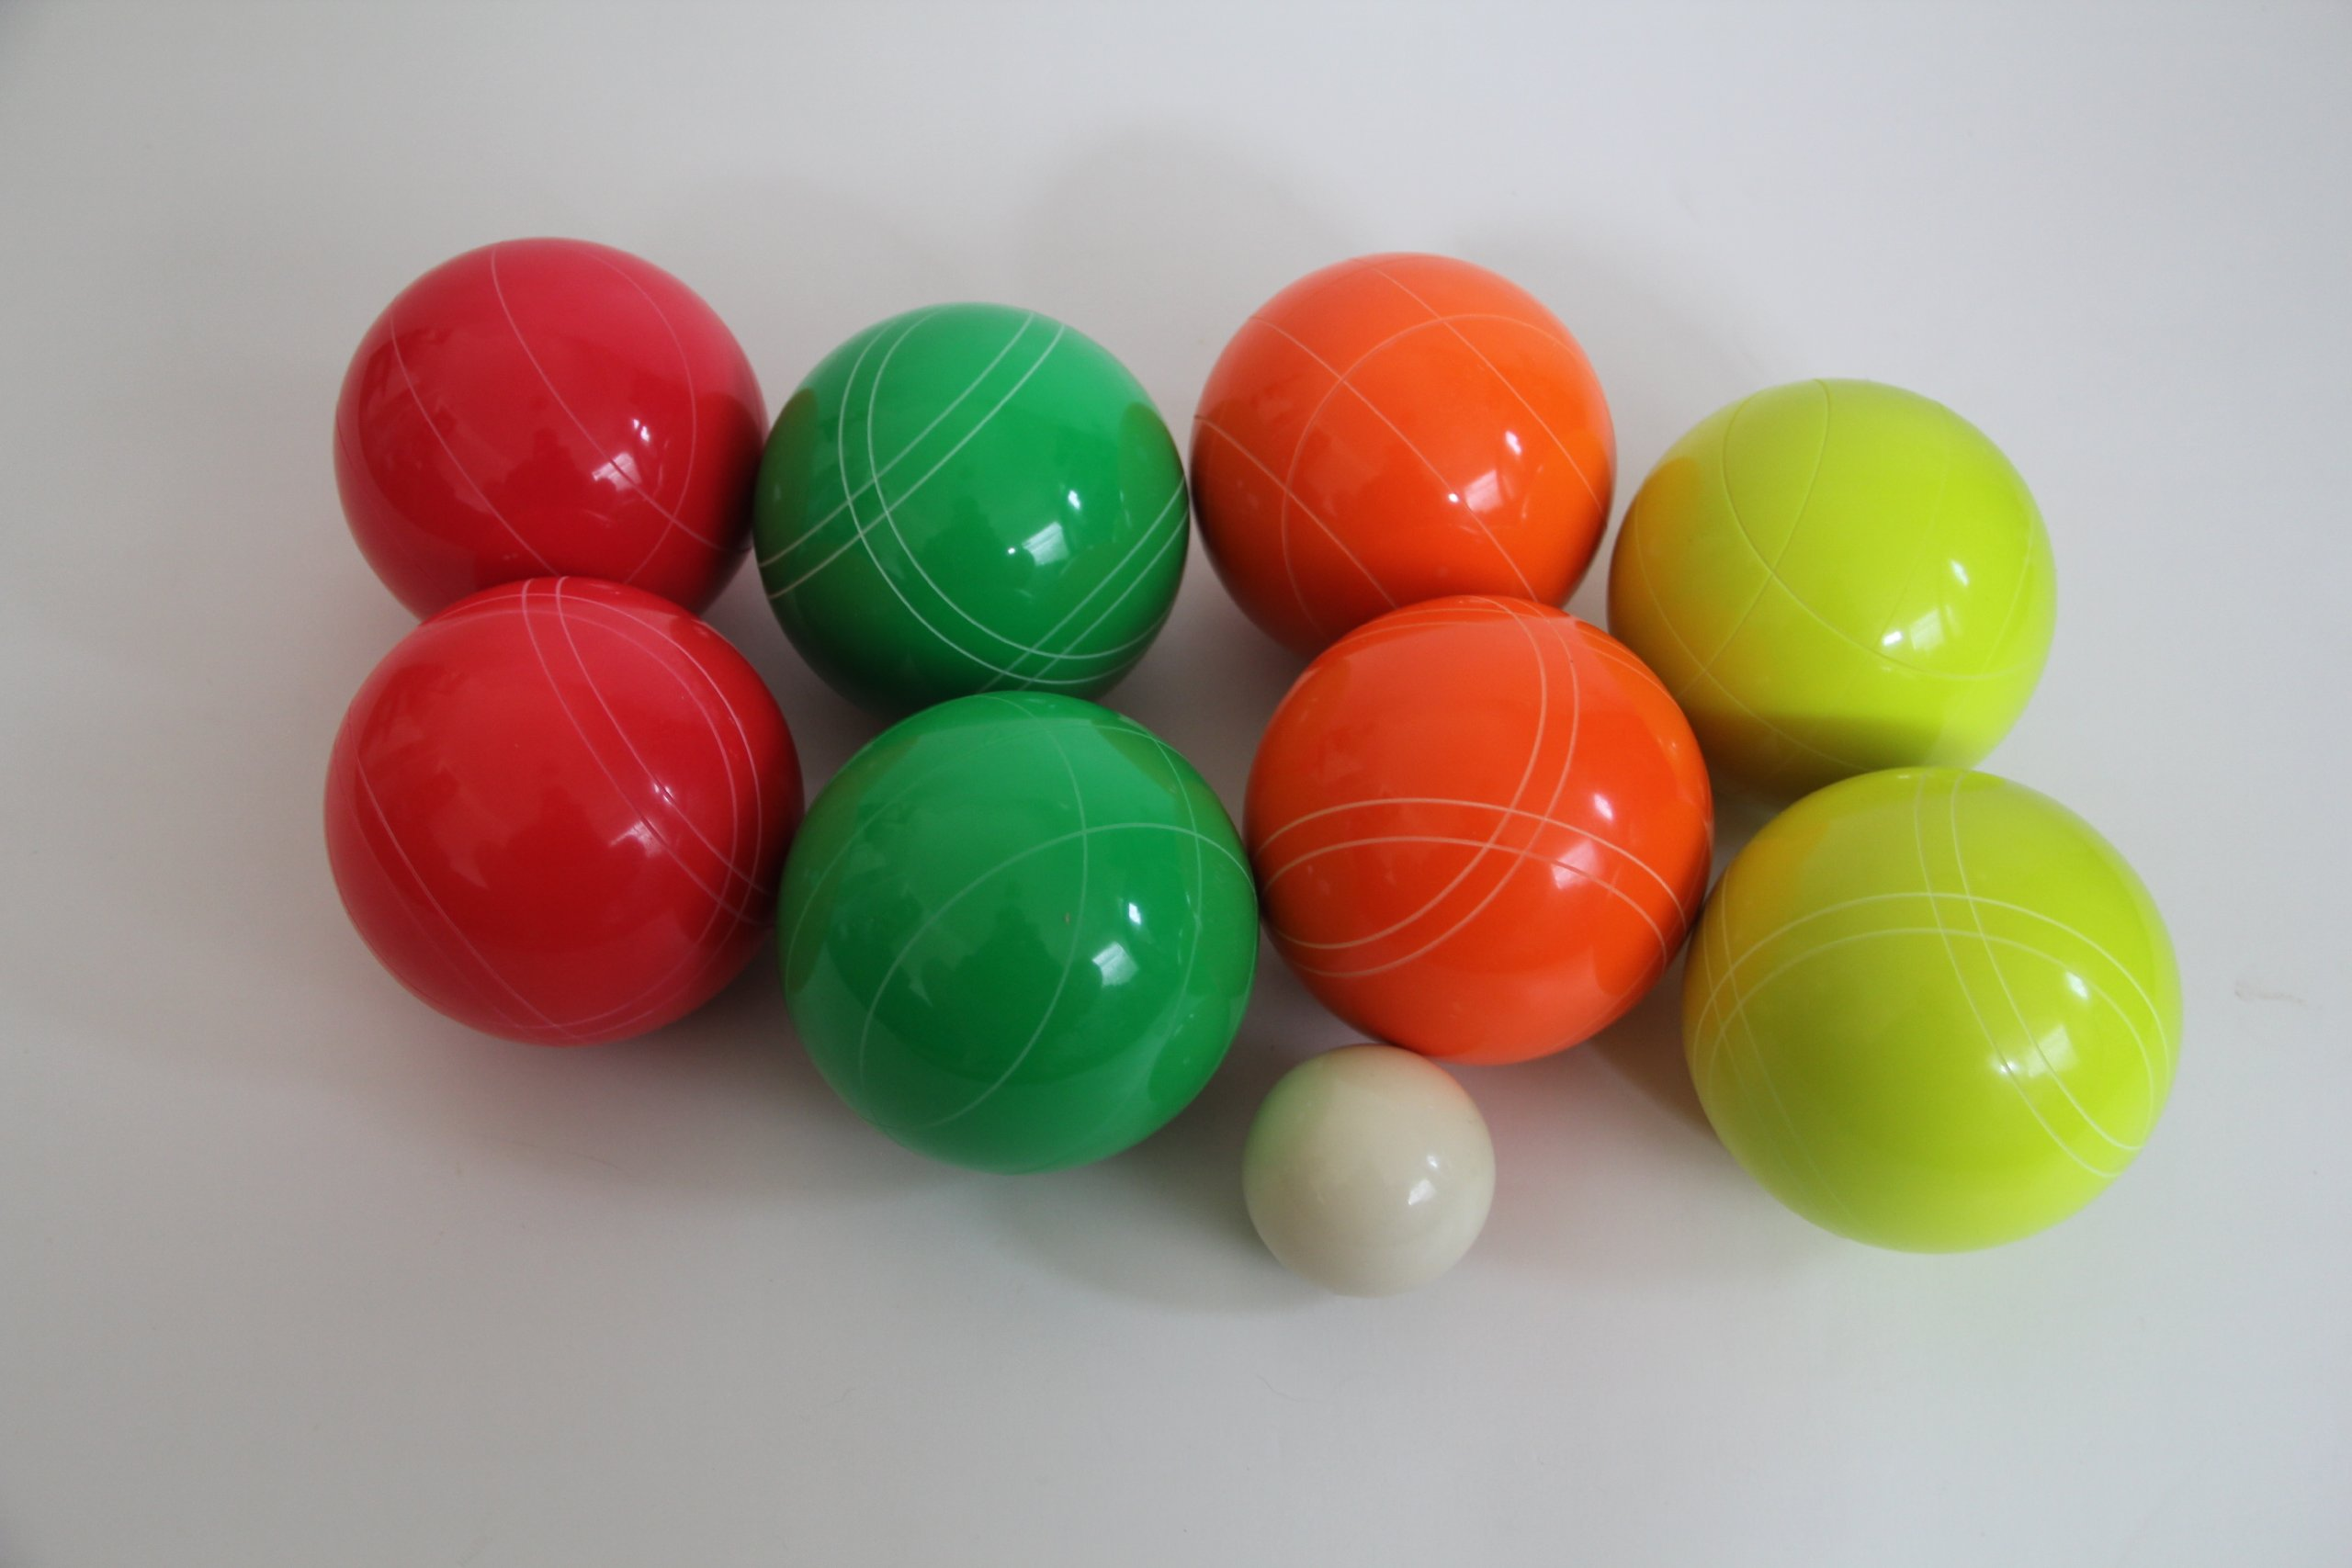 Premium Quality EPCO GLO Tournament Set, with Stripes - 110mm Green, Red, Yellow, Orange Bocce Balls - NO B... by Epco